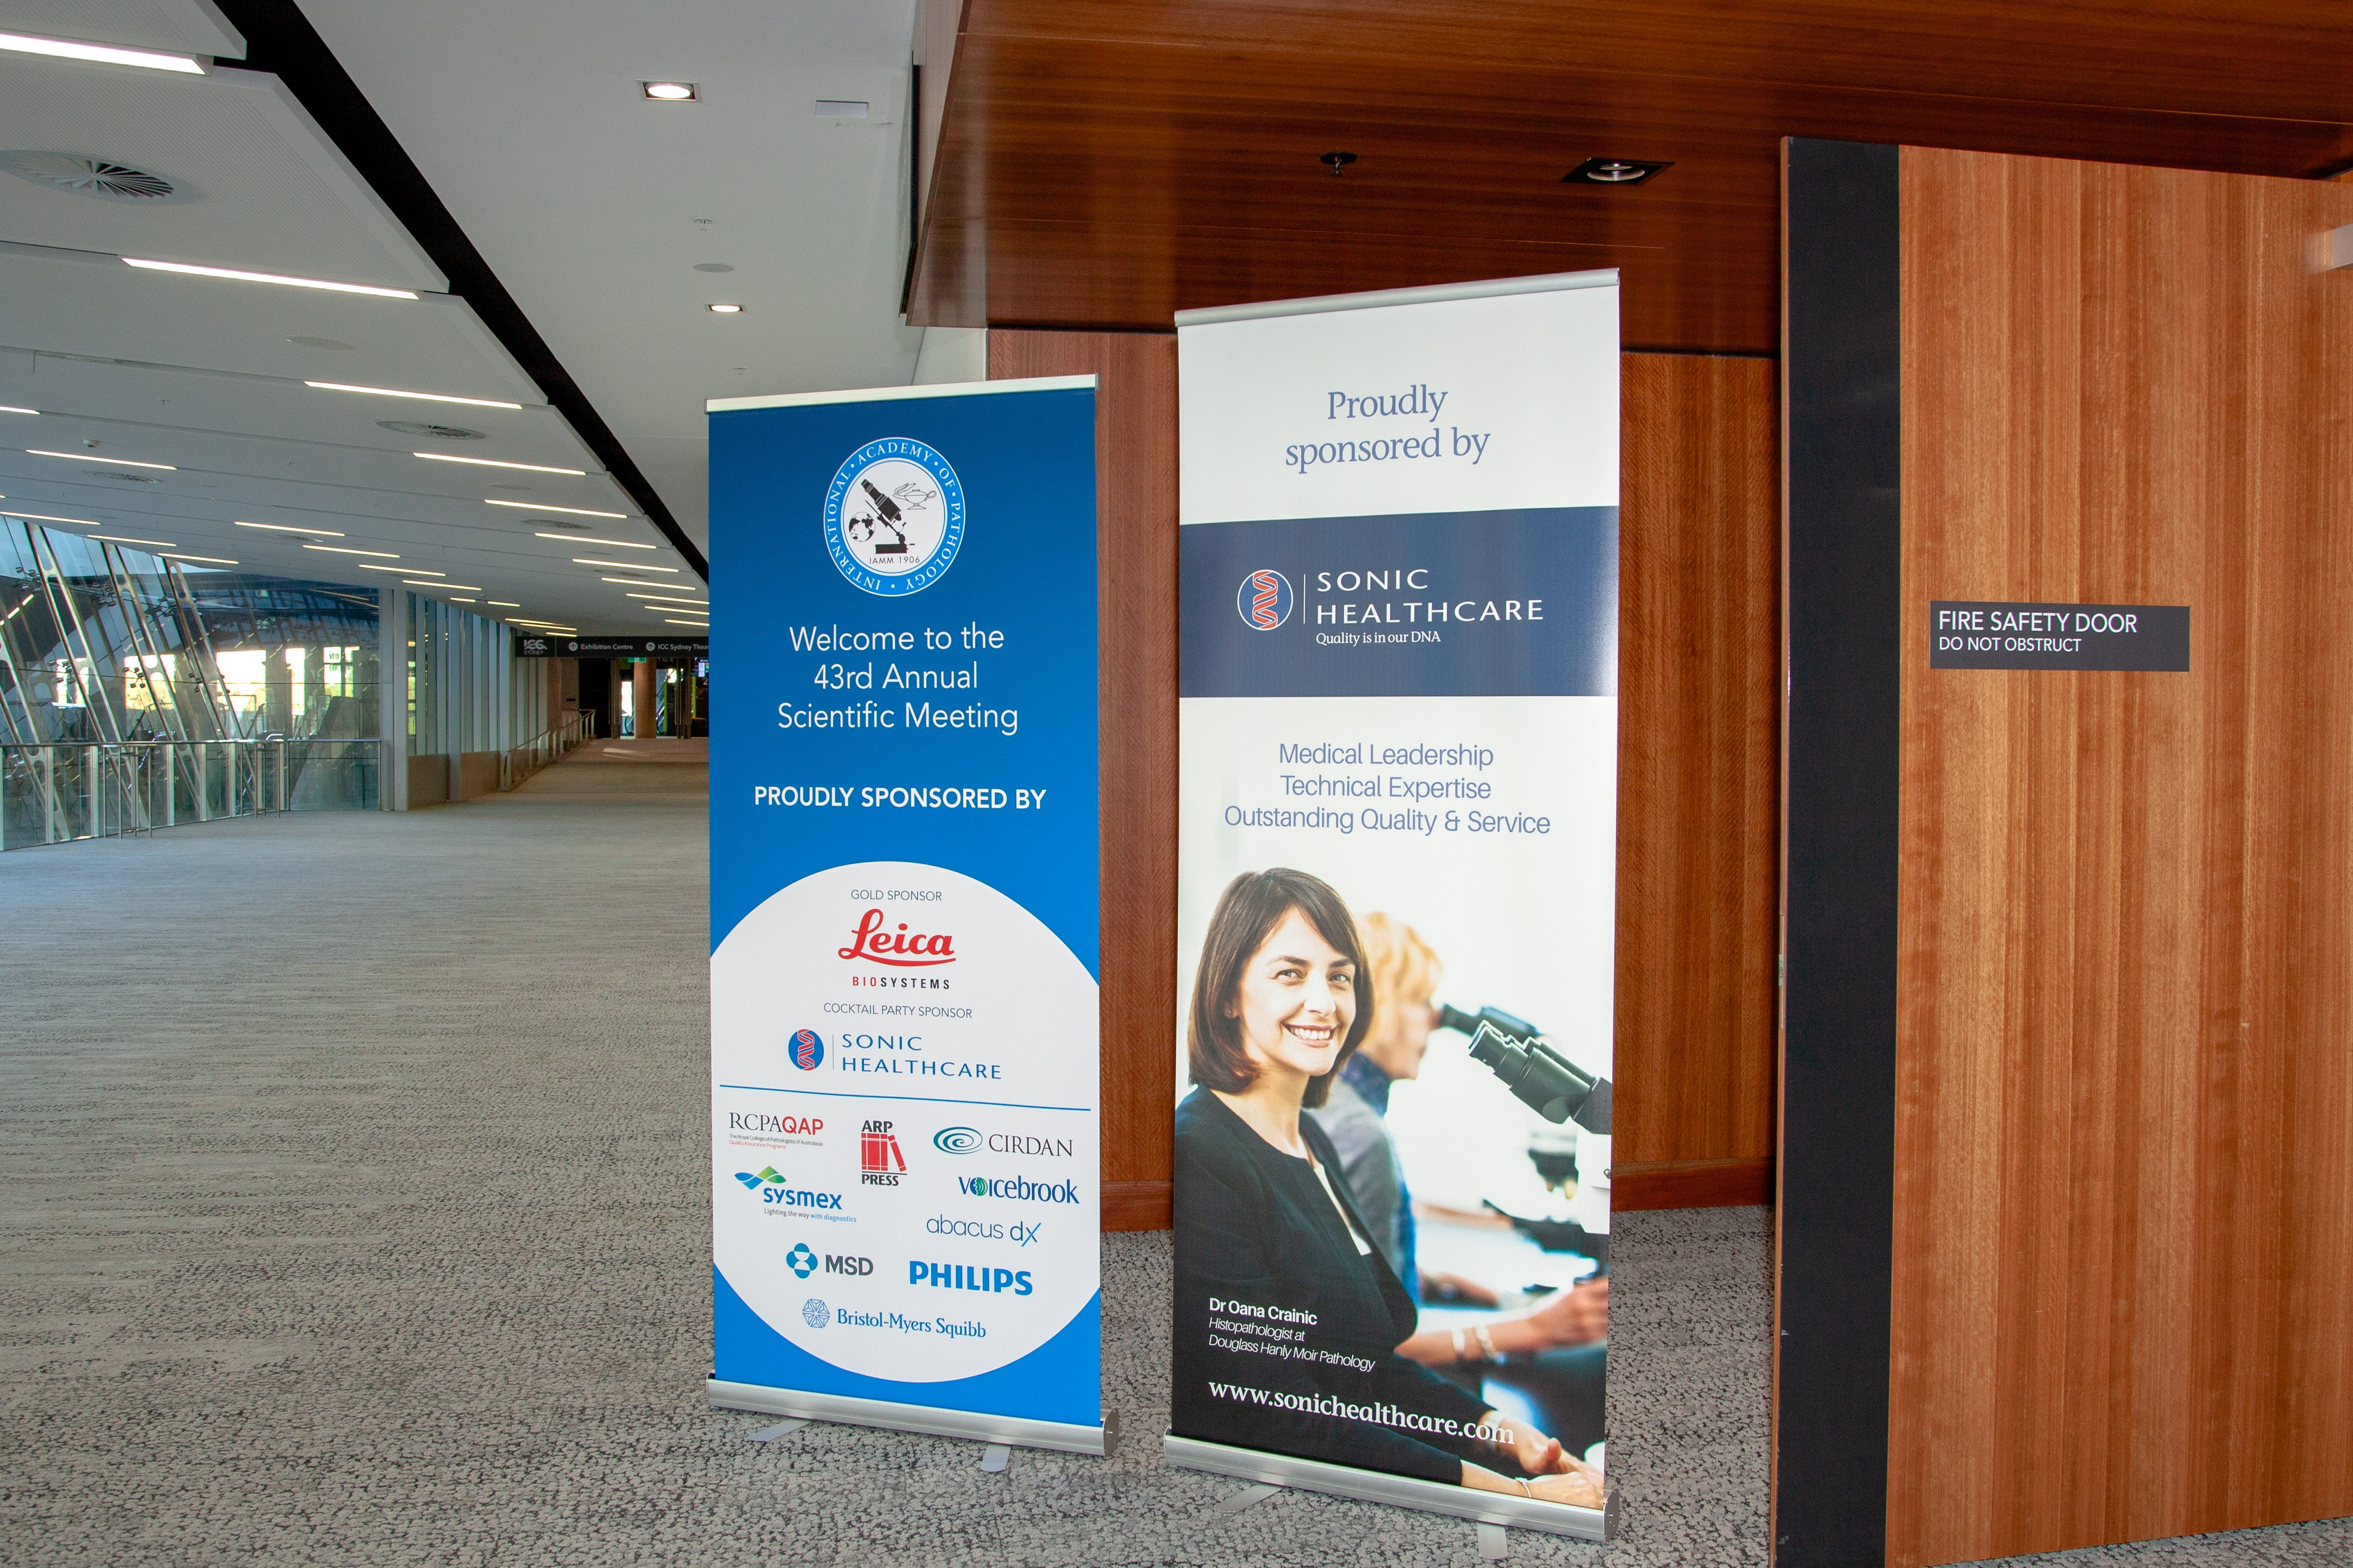 43rd Annual Scientific Meeting of the Australasian Division of the IAP